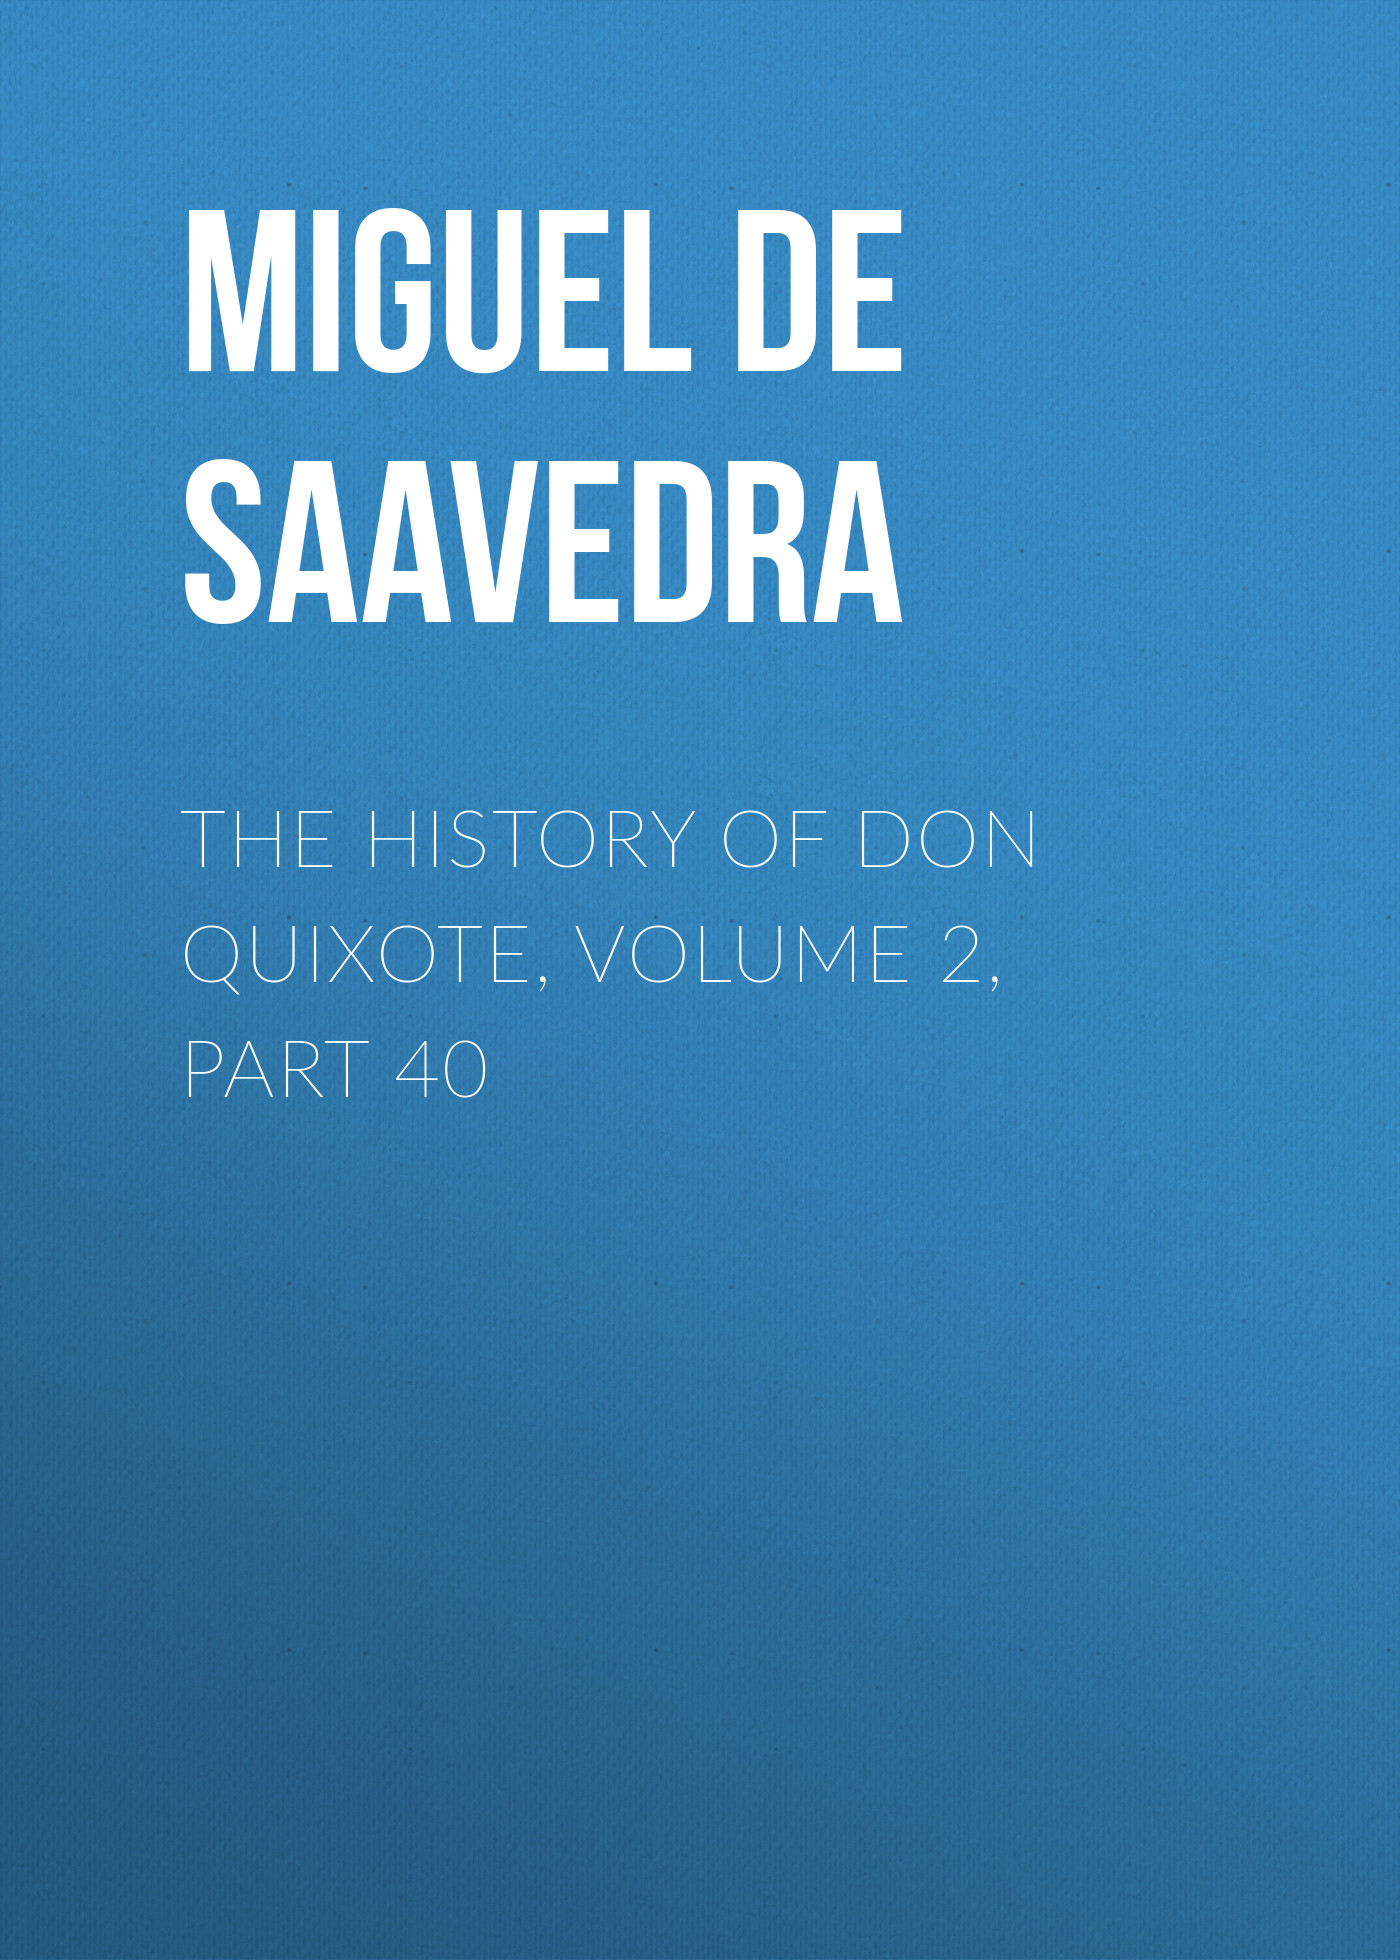 the history of don quixote volume 2 part 40